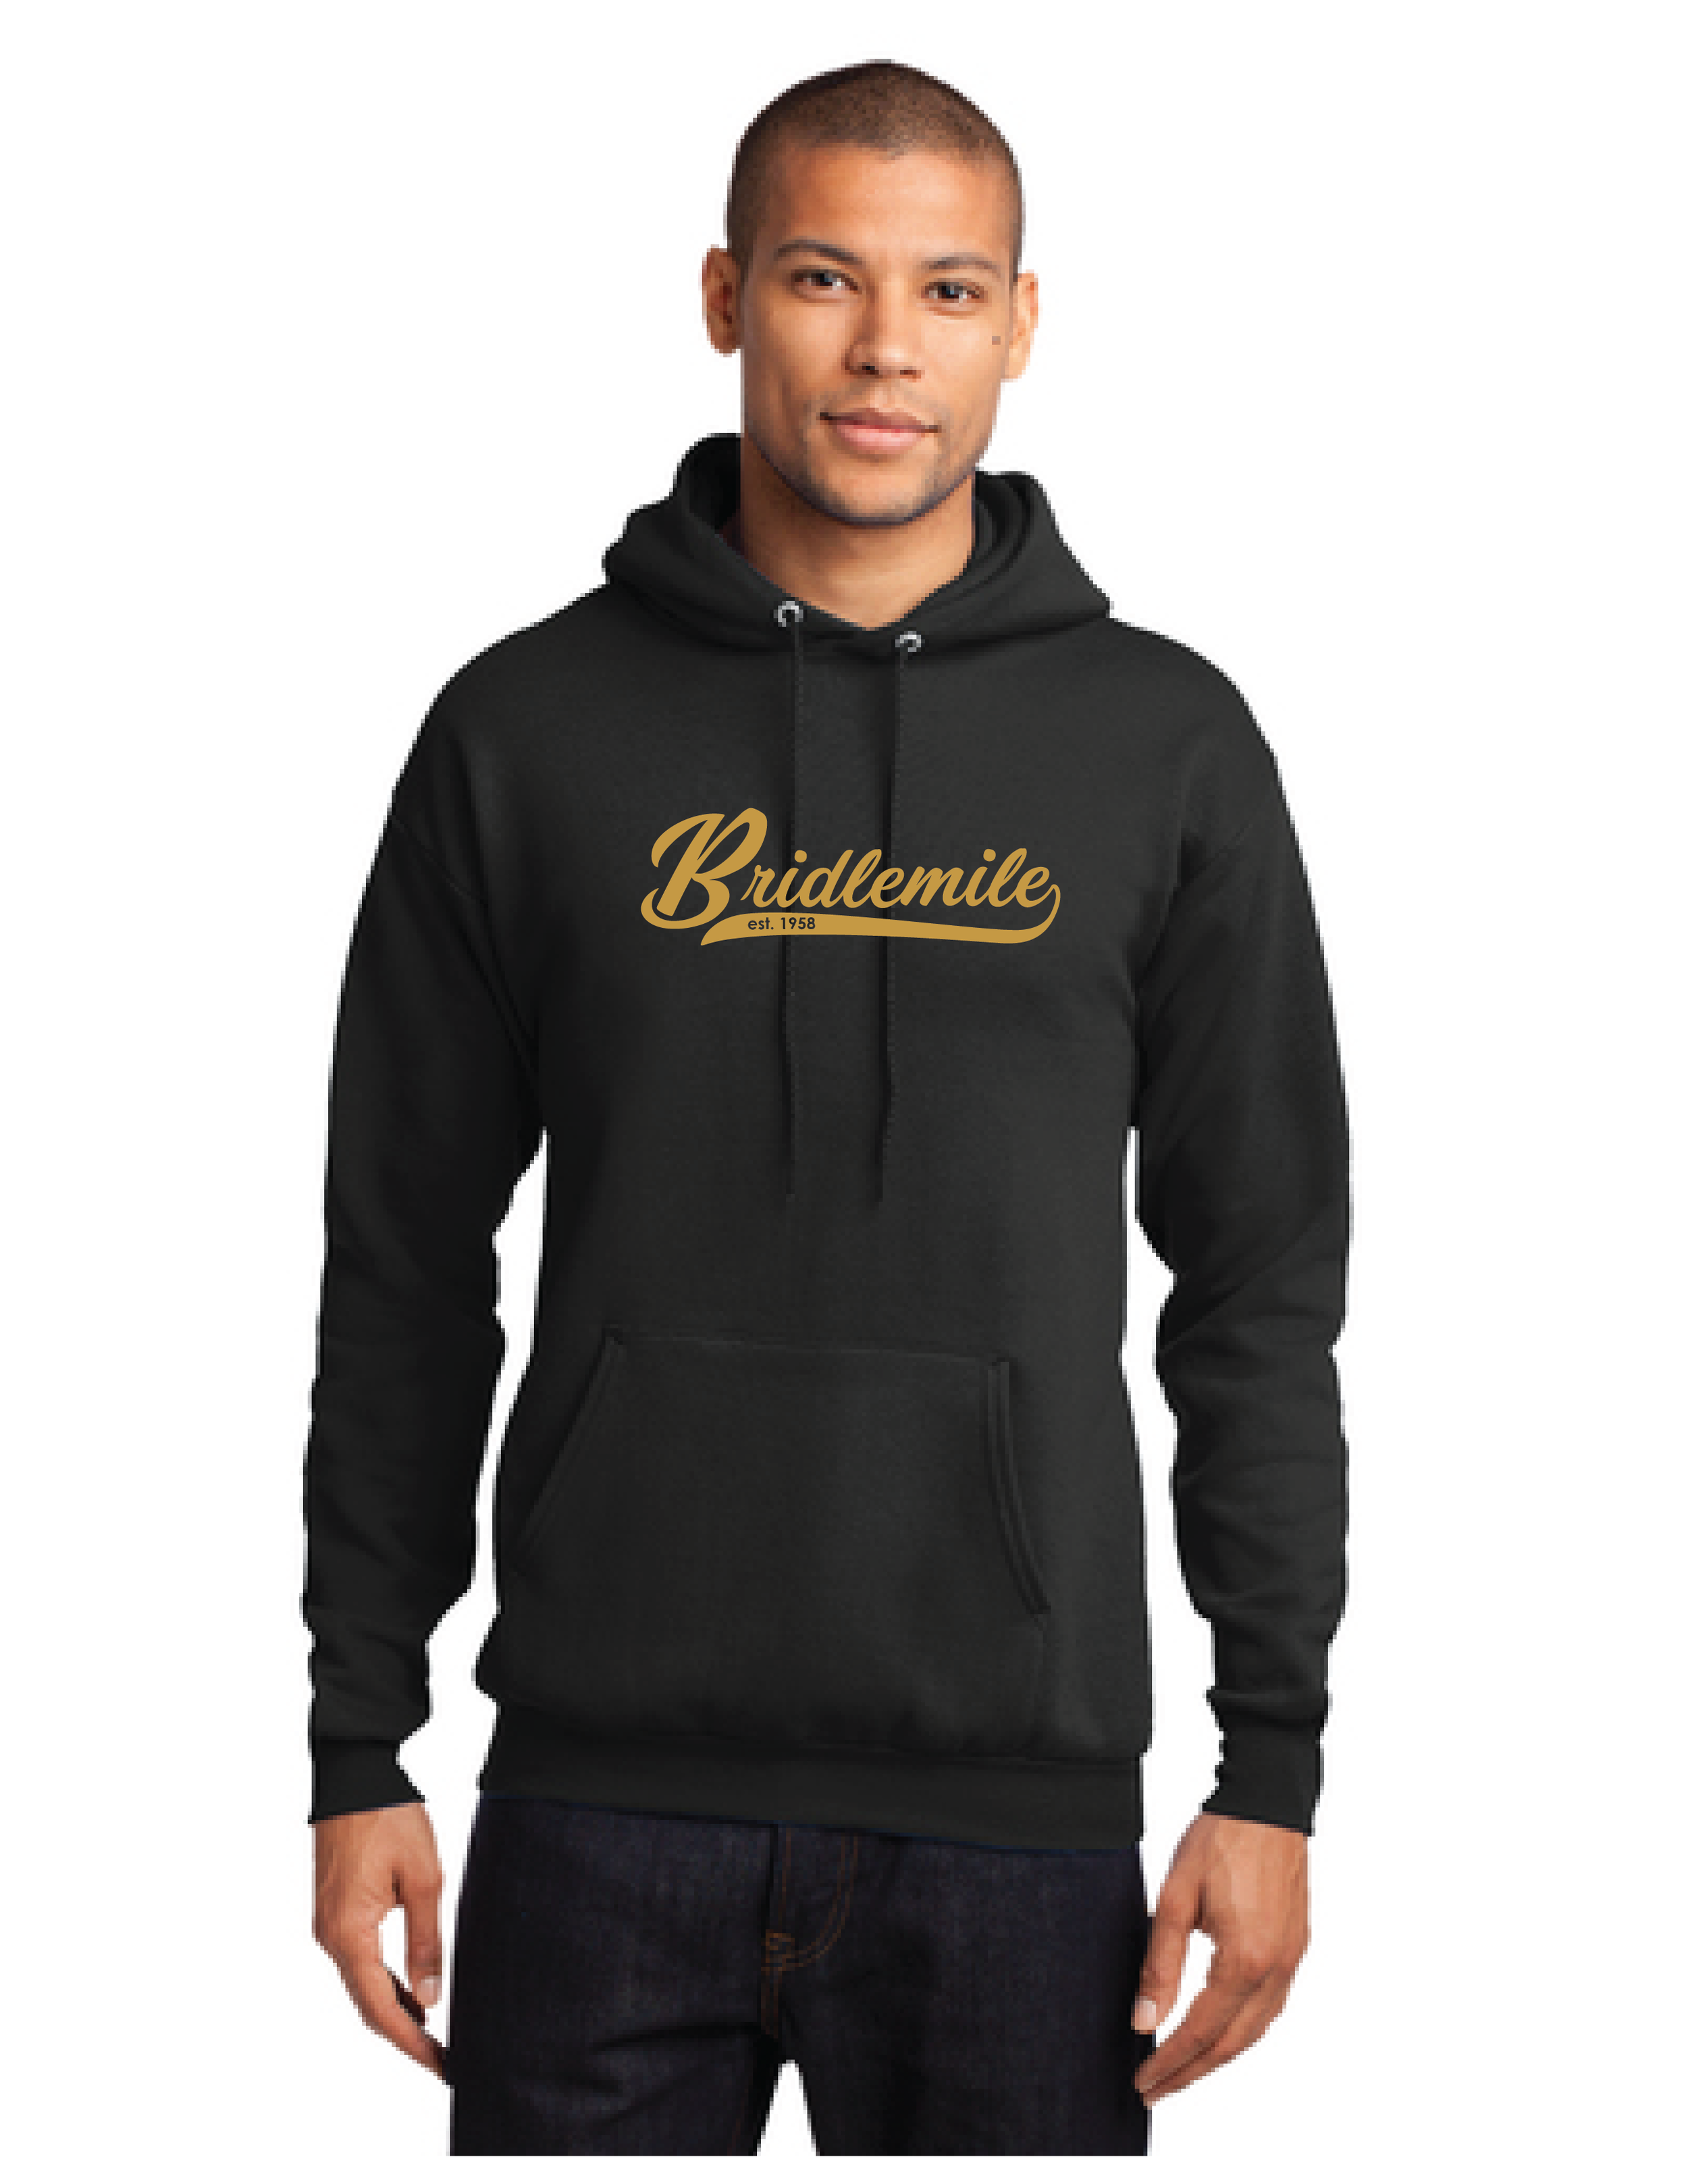 Bridlemile 60th Anniversary Designs_60th Pullover Hoodie Adult.png